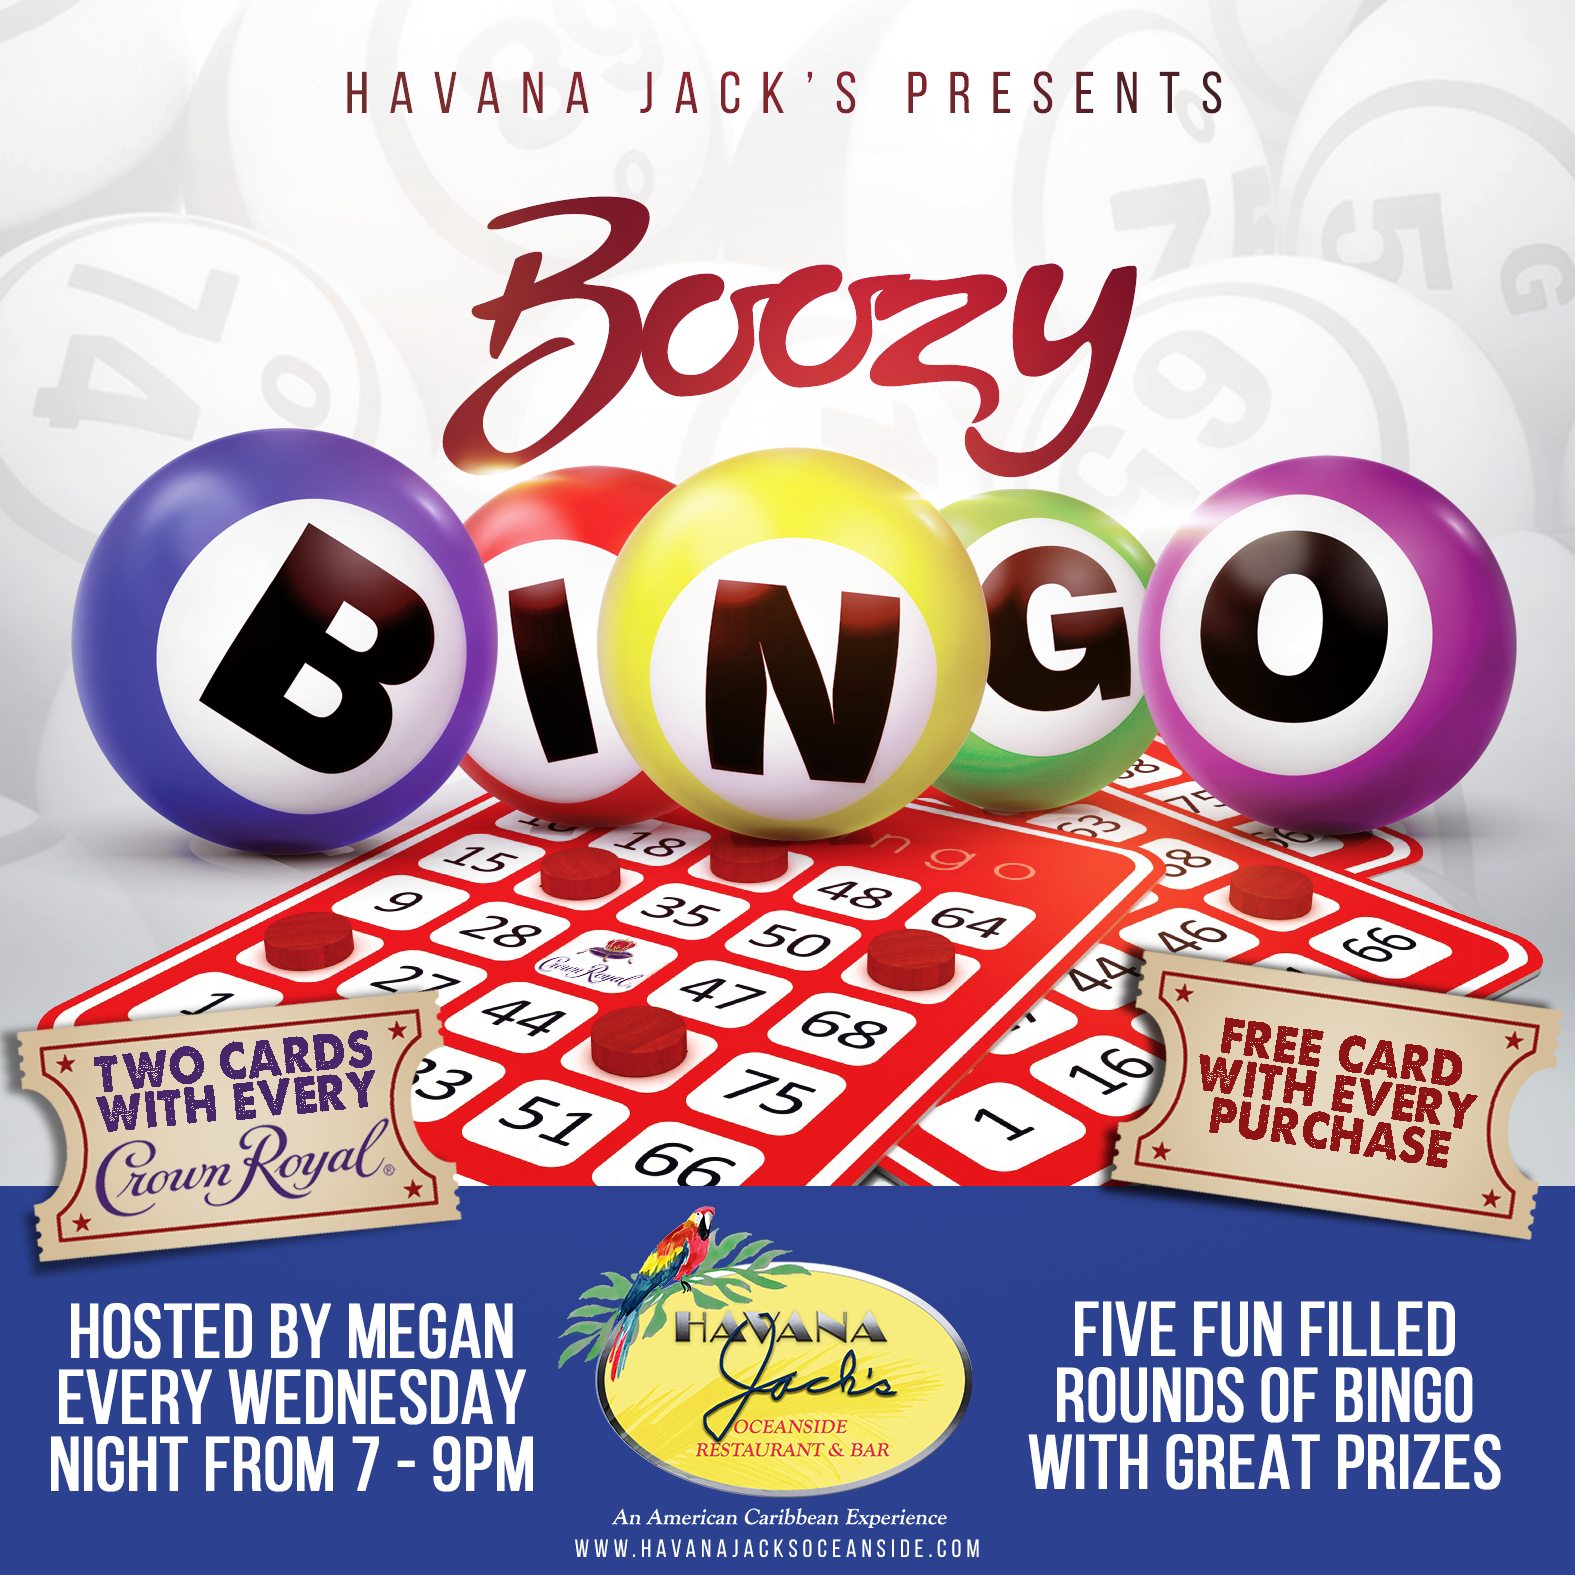 Boozy Bingo at Havana Jacks every Wednesday 7pm-9pm